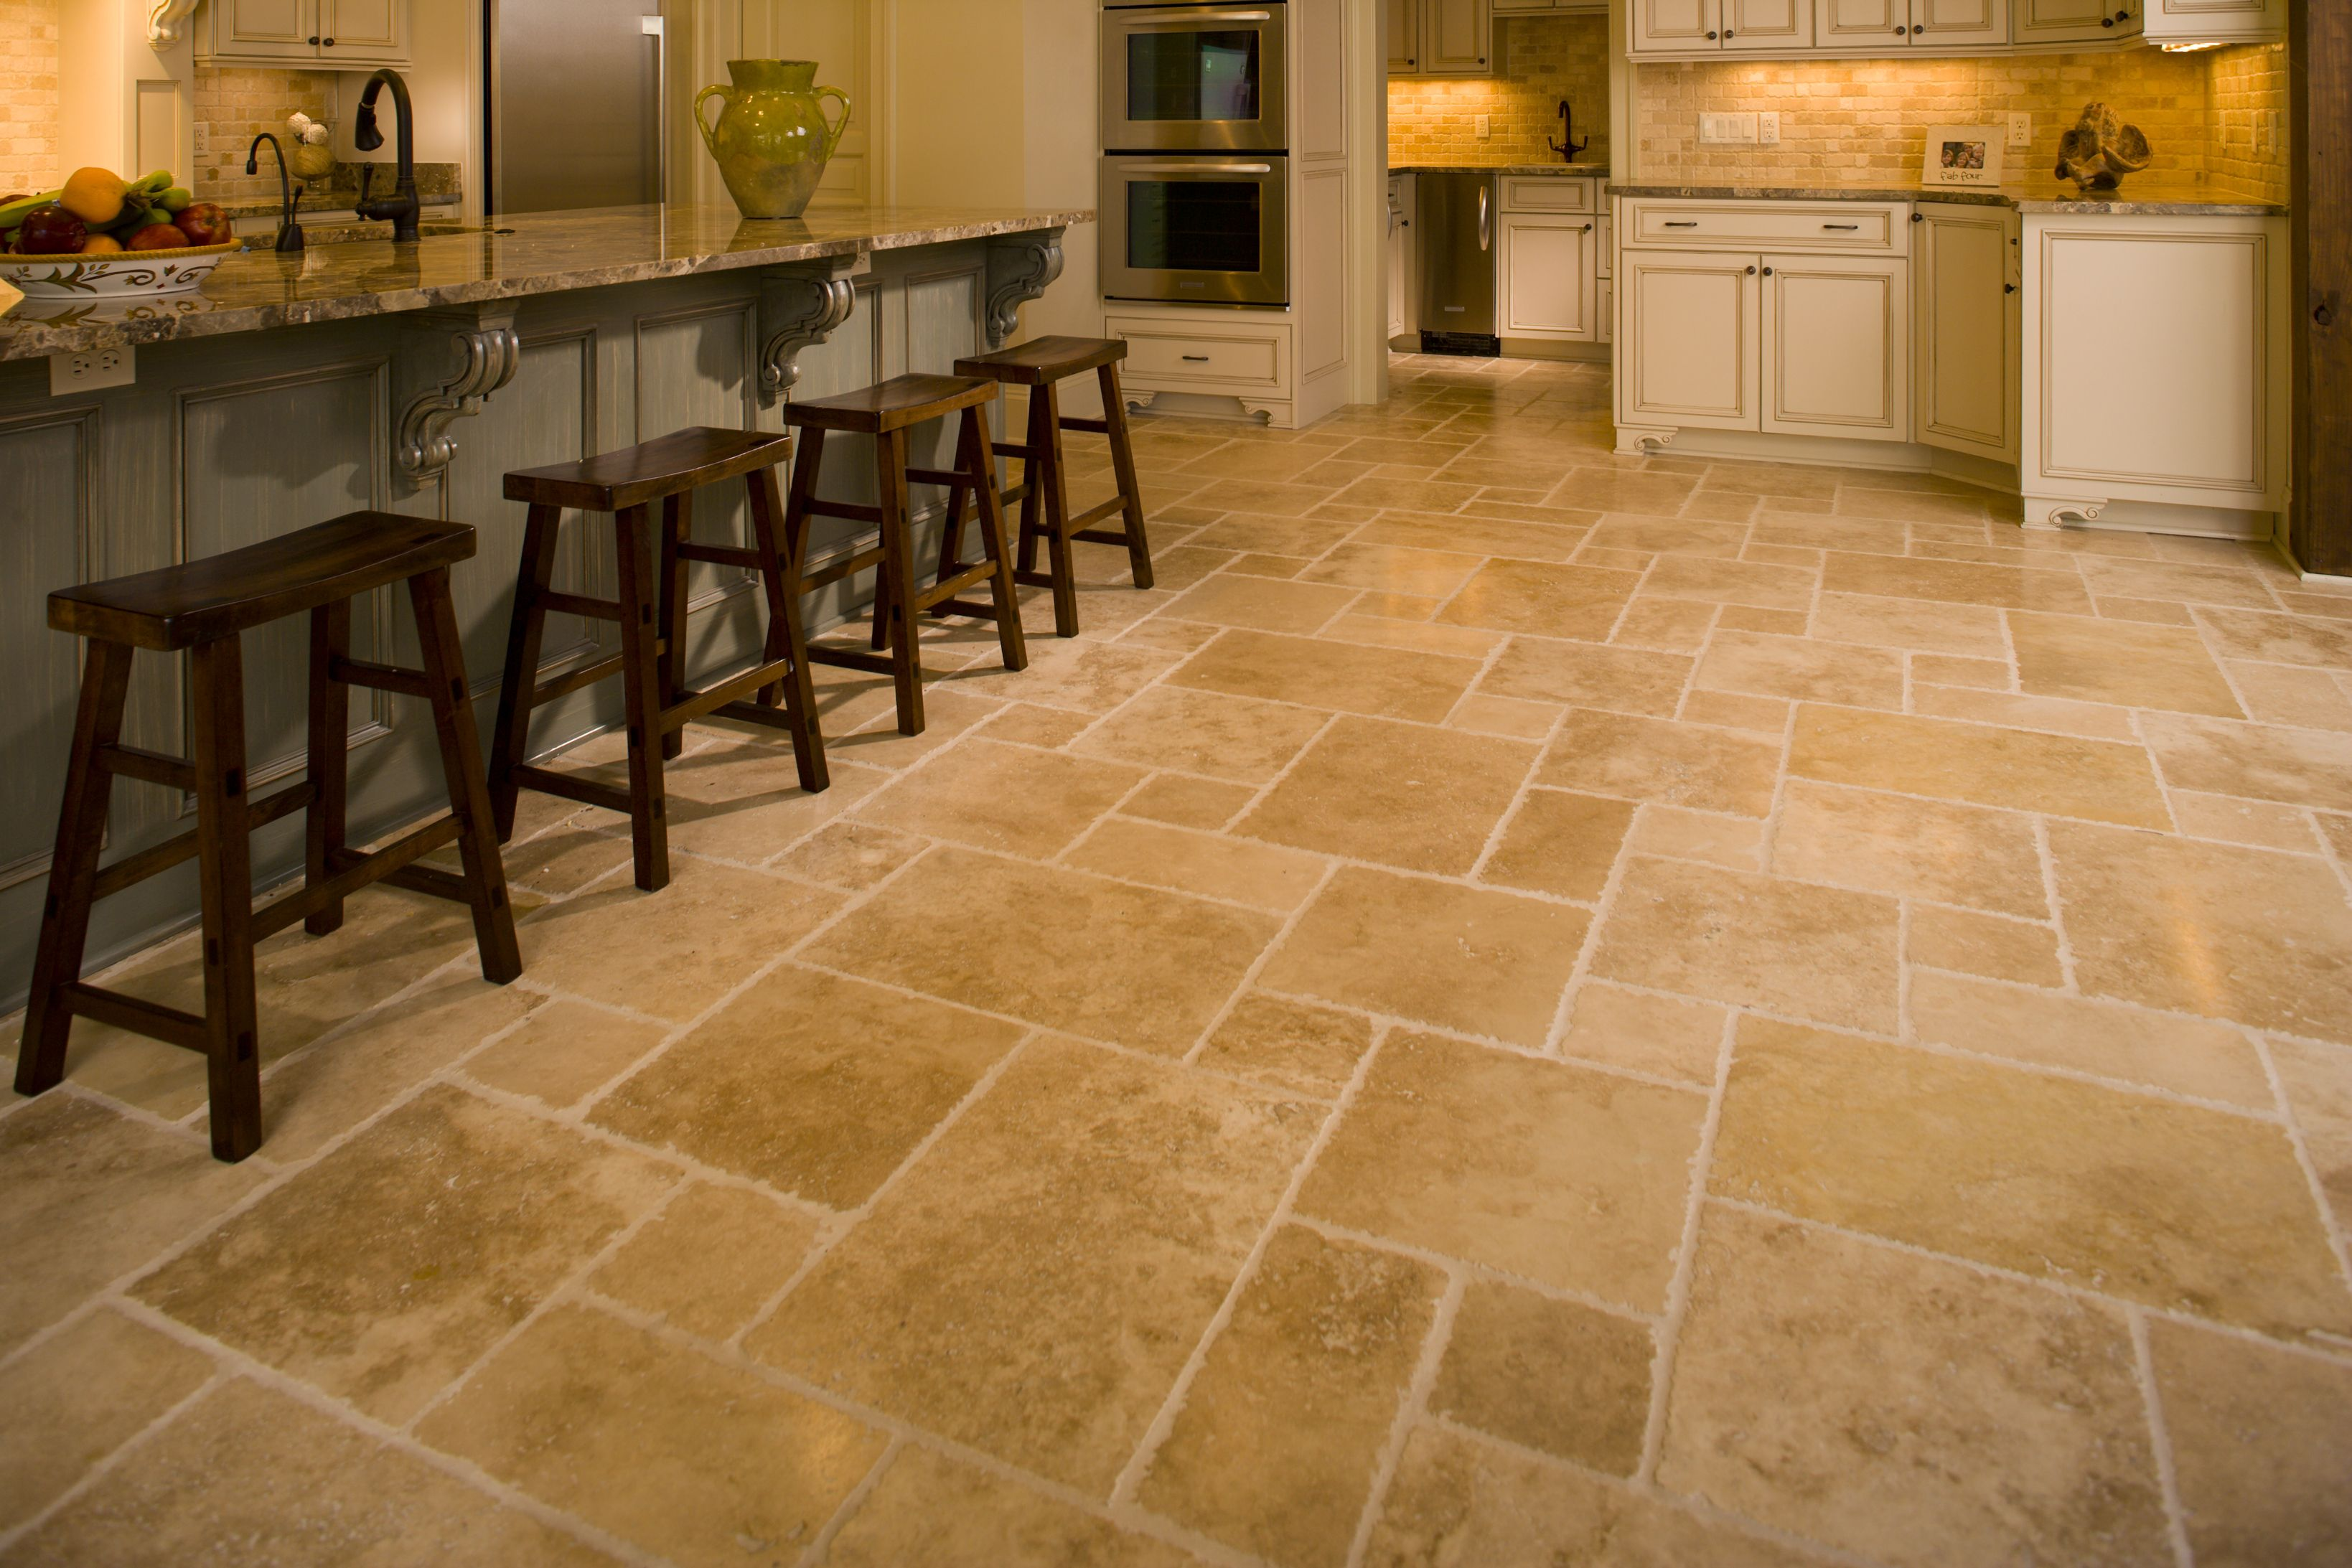 Versailles pattern chiesled edge travertine palatial stone and chiesled edge travertine floors and backsplash palatial stone tile dailygadgetfo Image collections